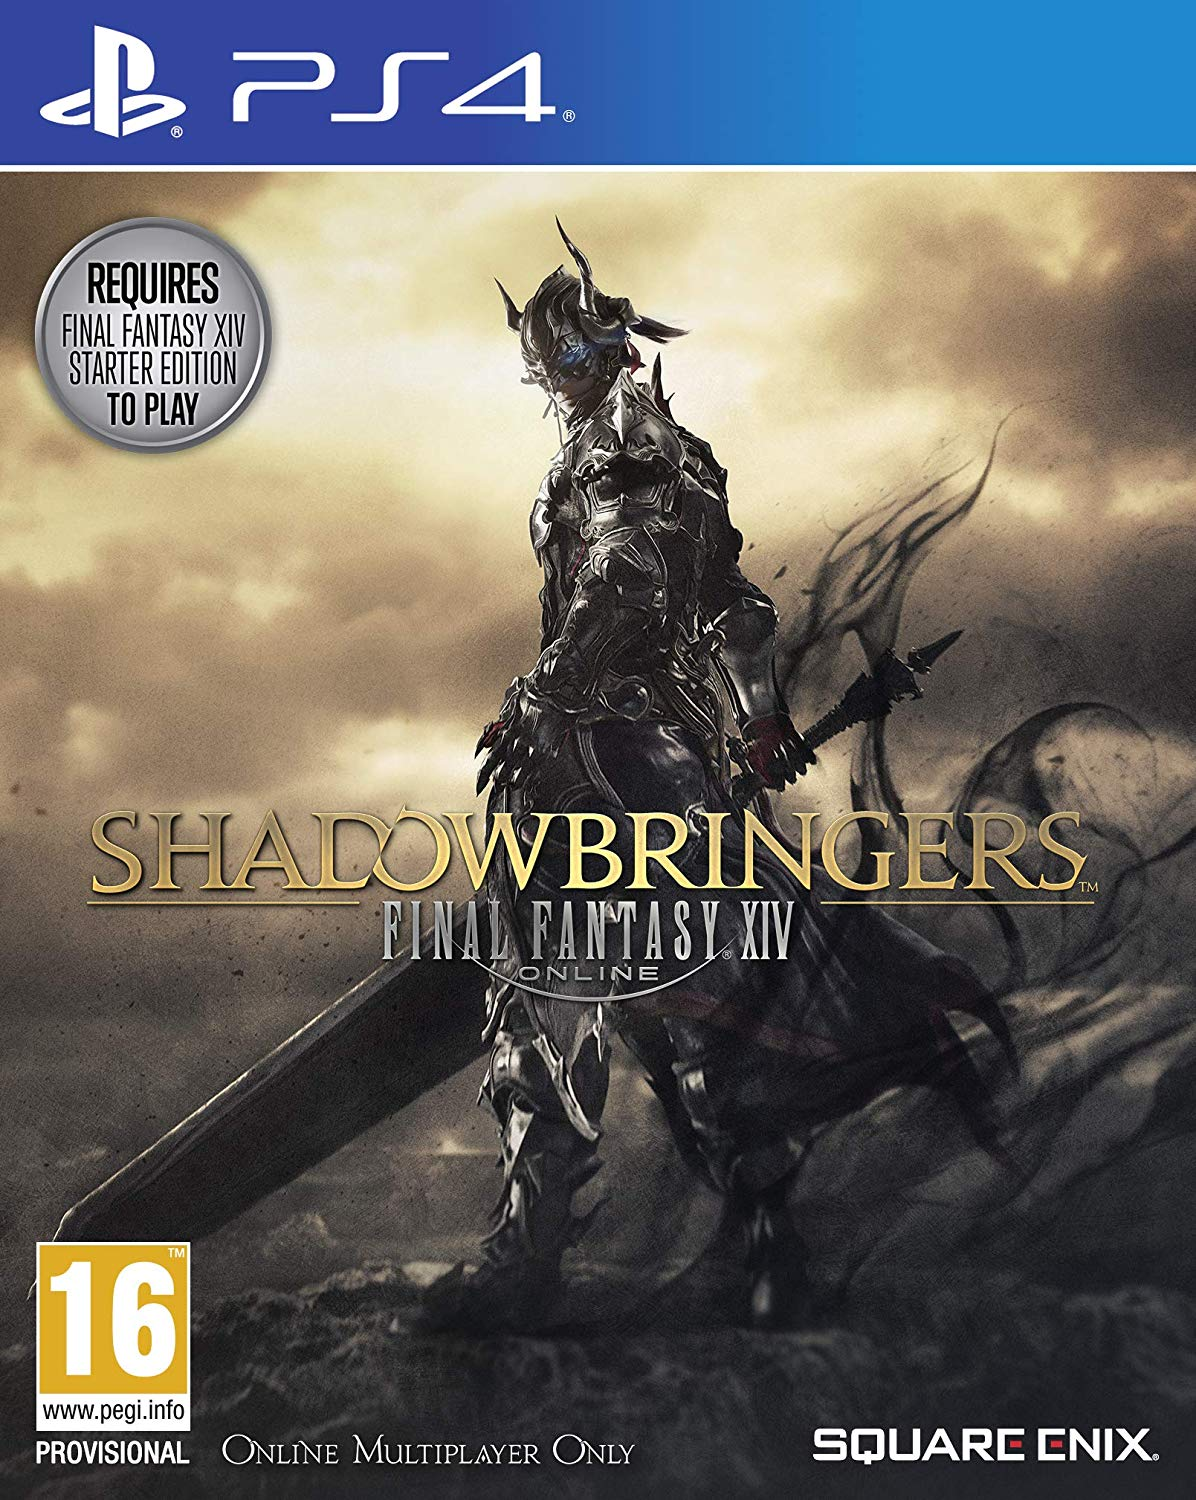 Final Fantasy XIV: Shadowbringers (PS4)